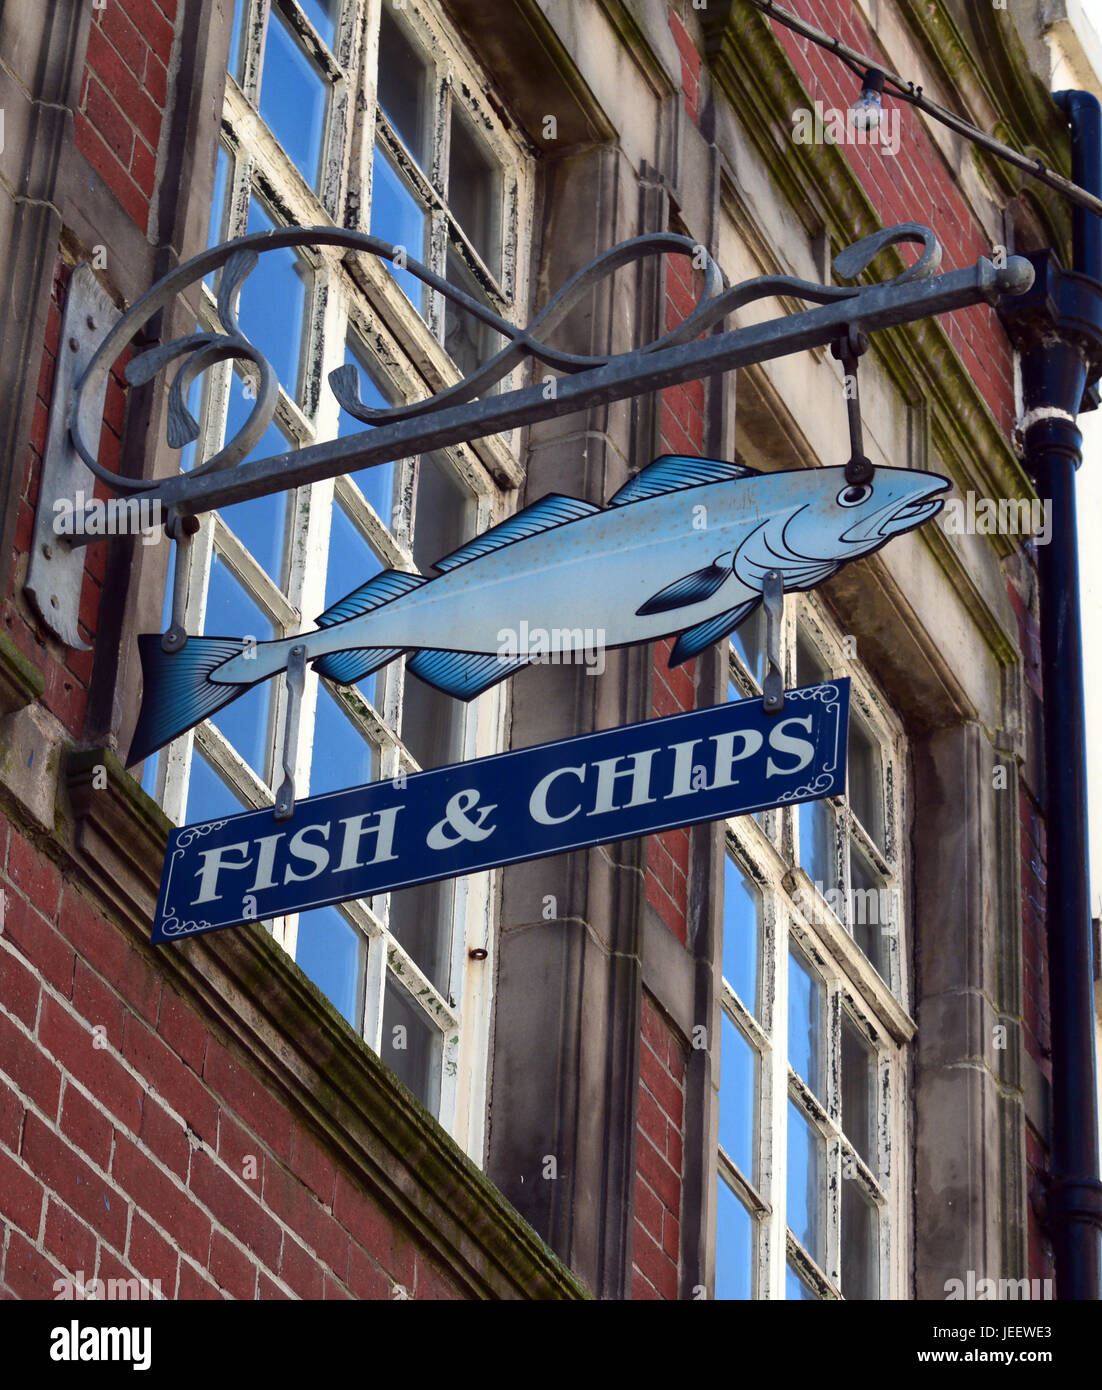 PICTORIAL BRITISH FISH AND CHIP SIGN _WHITBY, YORKSHIRE - Stock Image